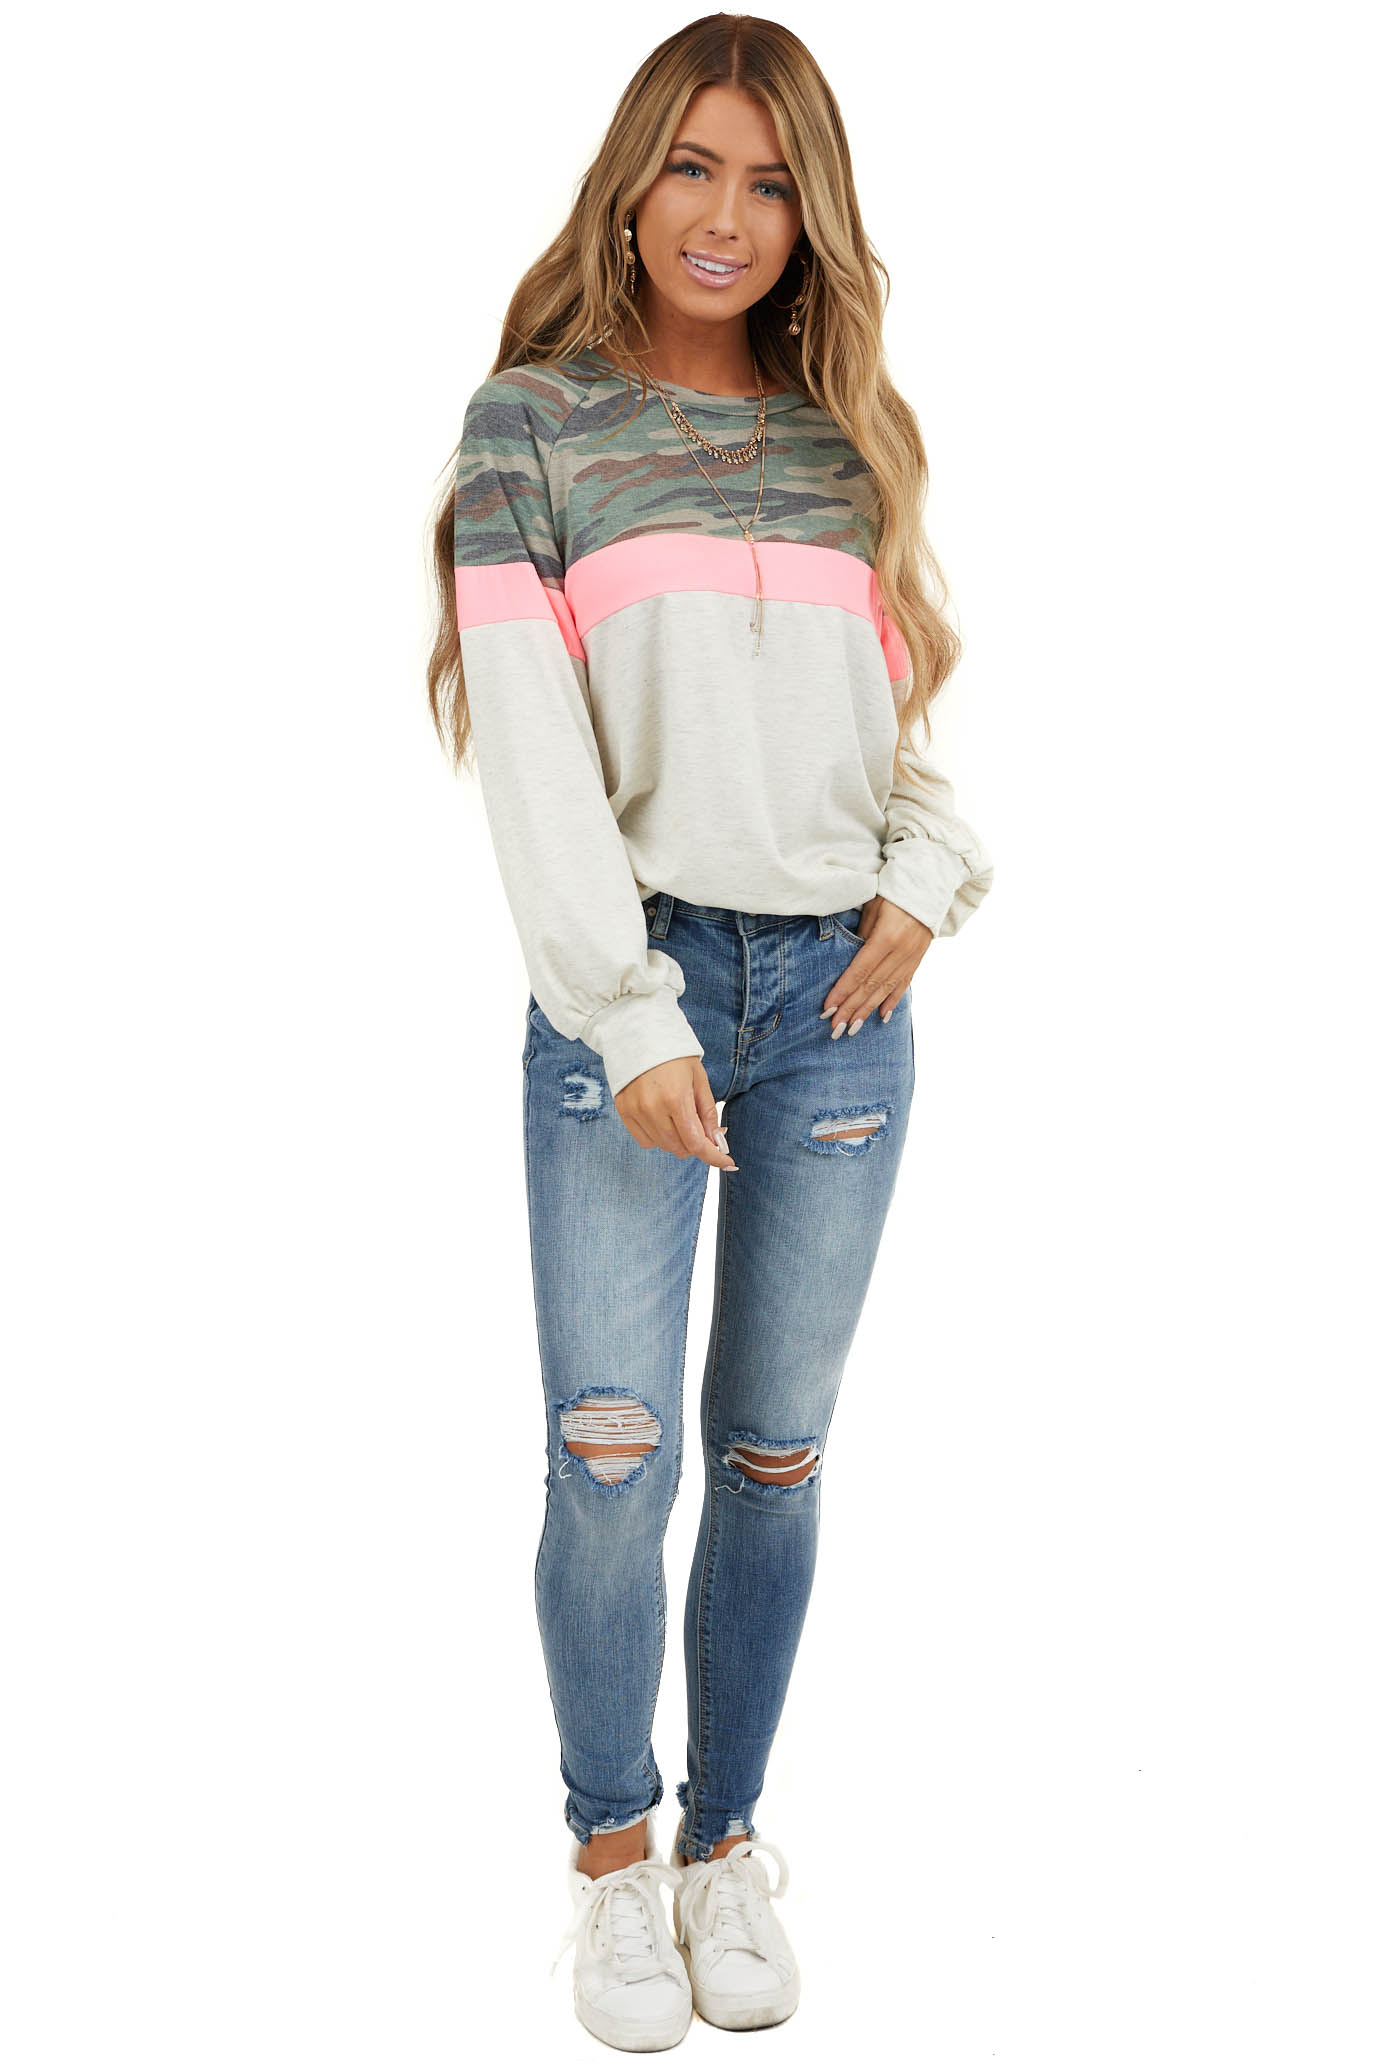 Oatmeal Camo Colorblock Long Sleeve Knit Sweatshirt